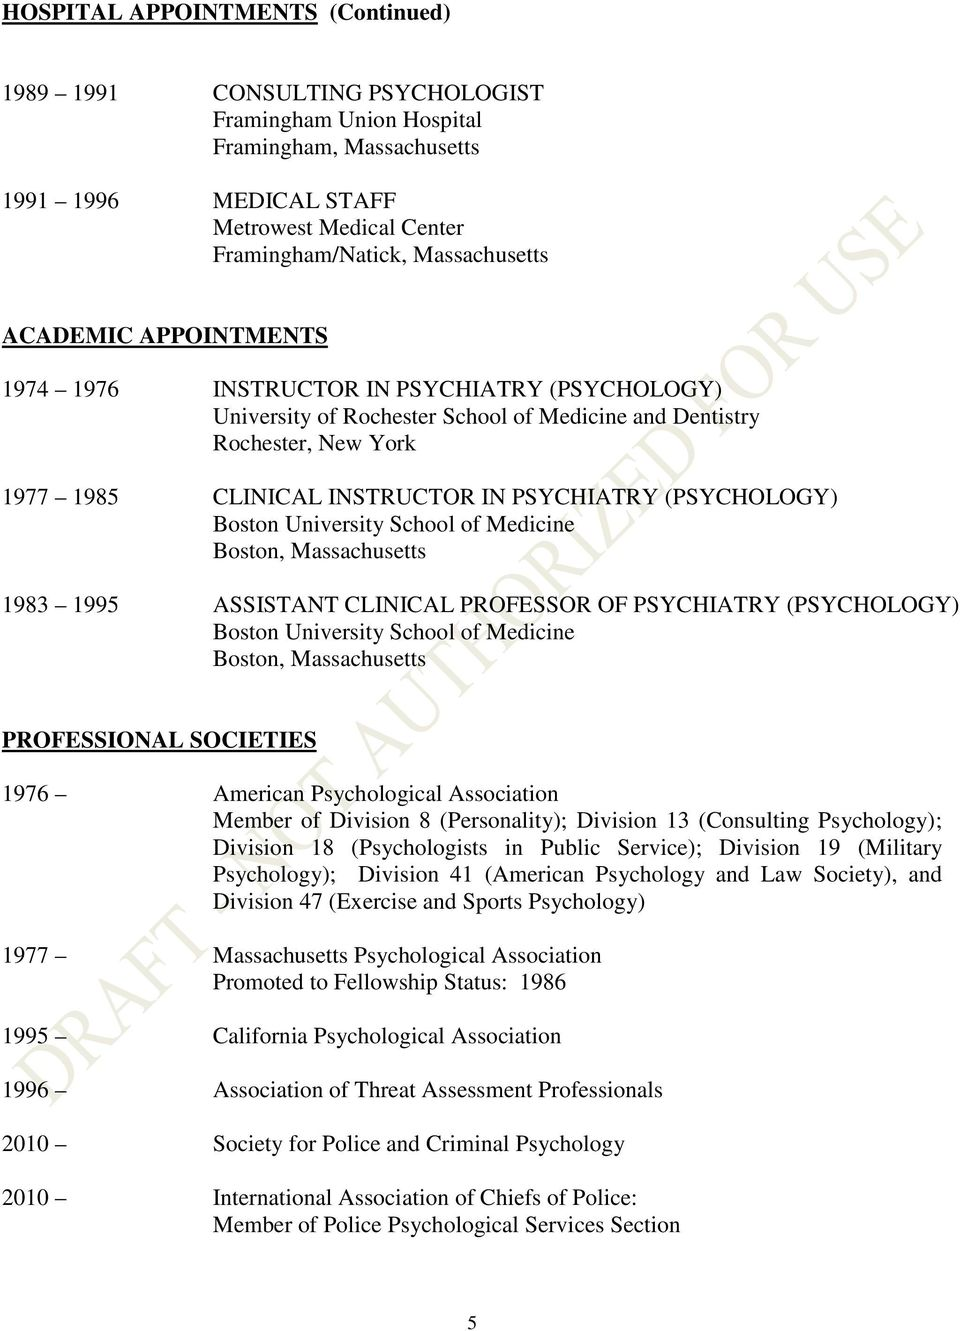 1995 ASSISTANT CLINICAL PROFESSOR OF PSYCHIATRY (PSYCHOLOGY) Boston University School of Medicine PROFESSIONAL SOCIETIES 1976 American Psychological Association Member of Division 8 (Personality);